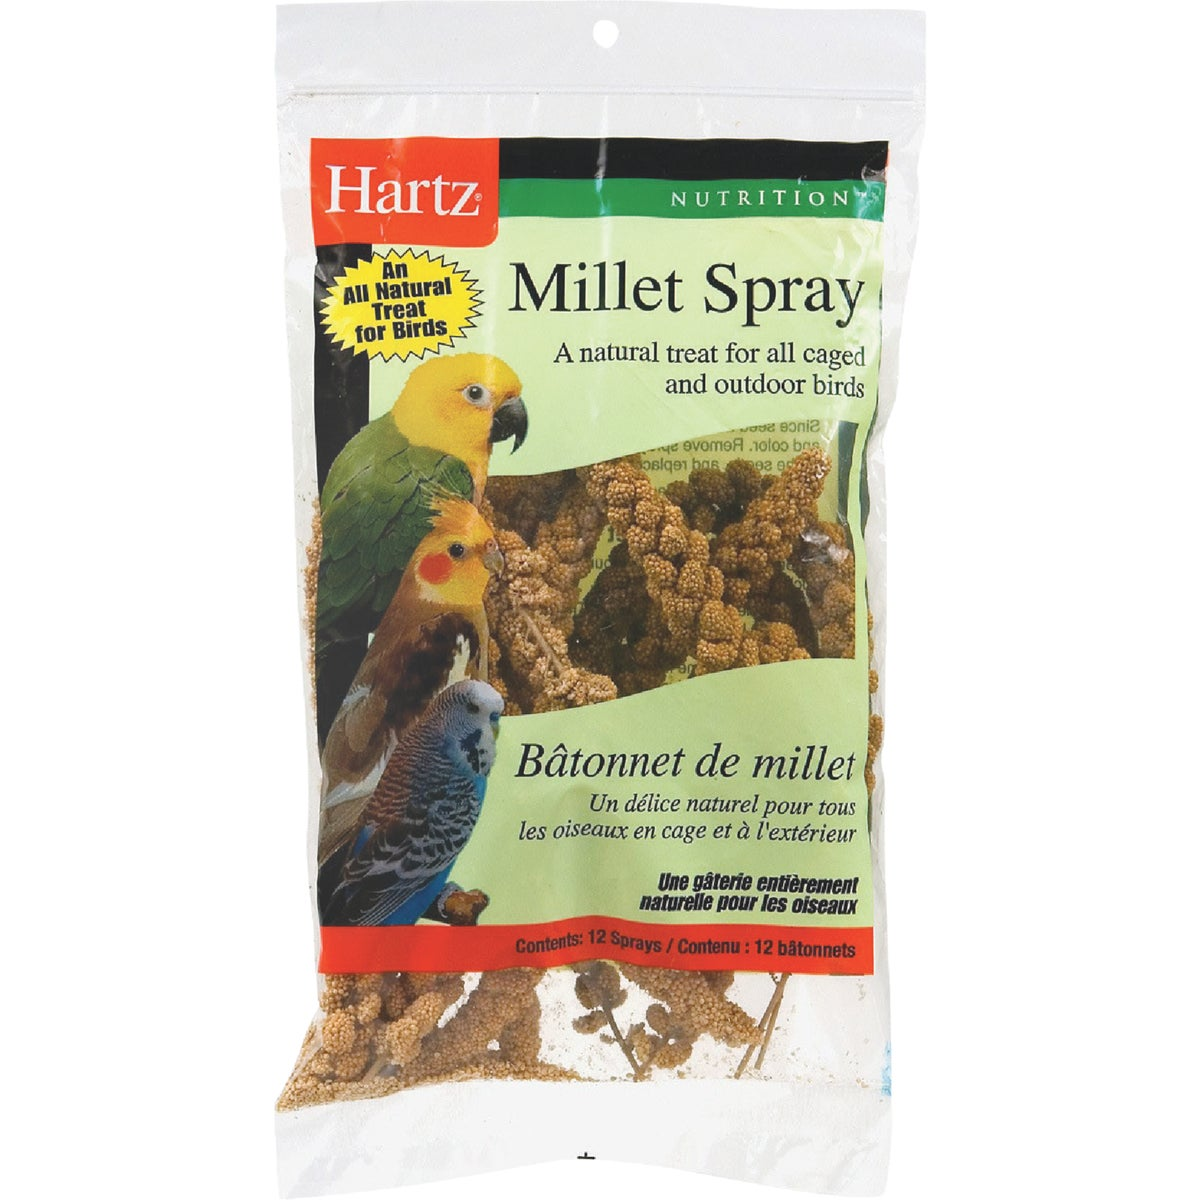 MILLET SPRAY - 3270097605 by Hartz Mountain Corp